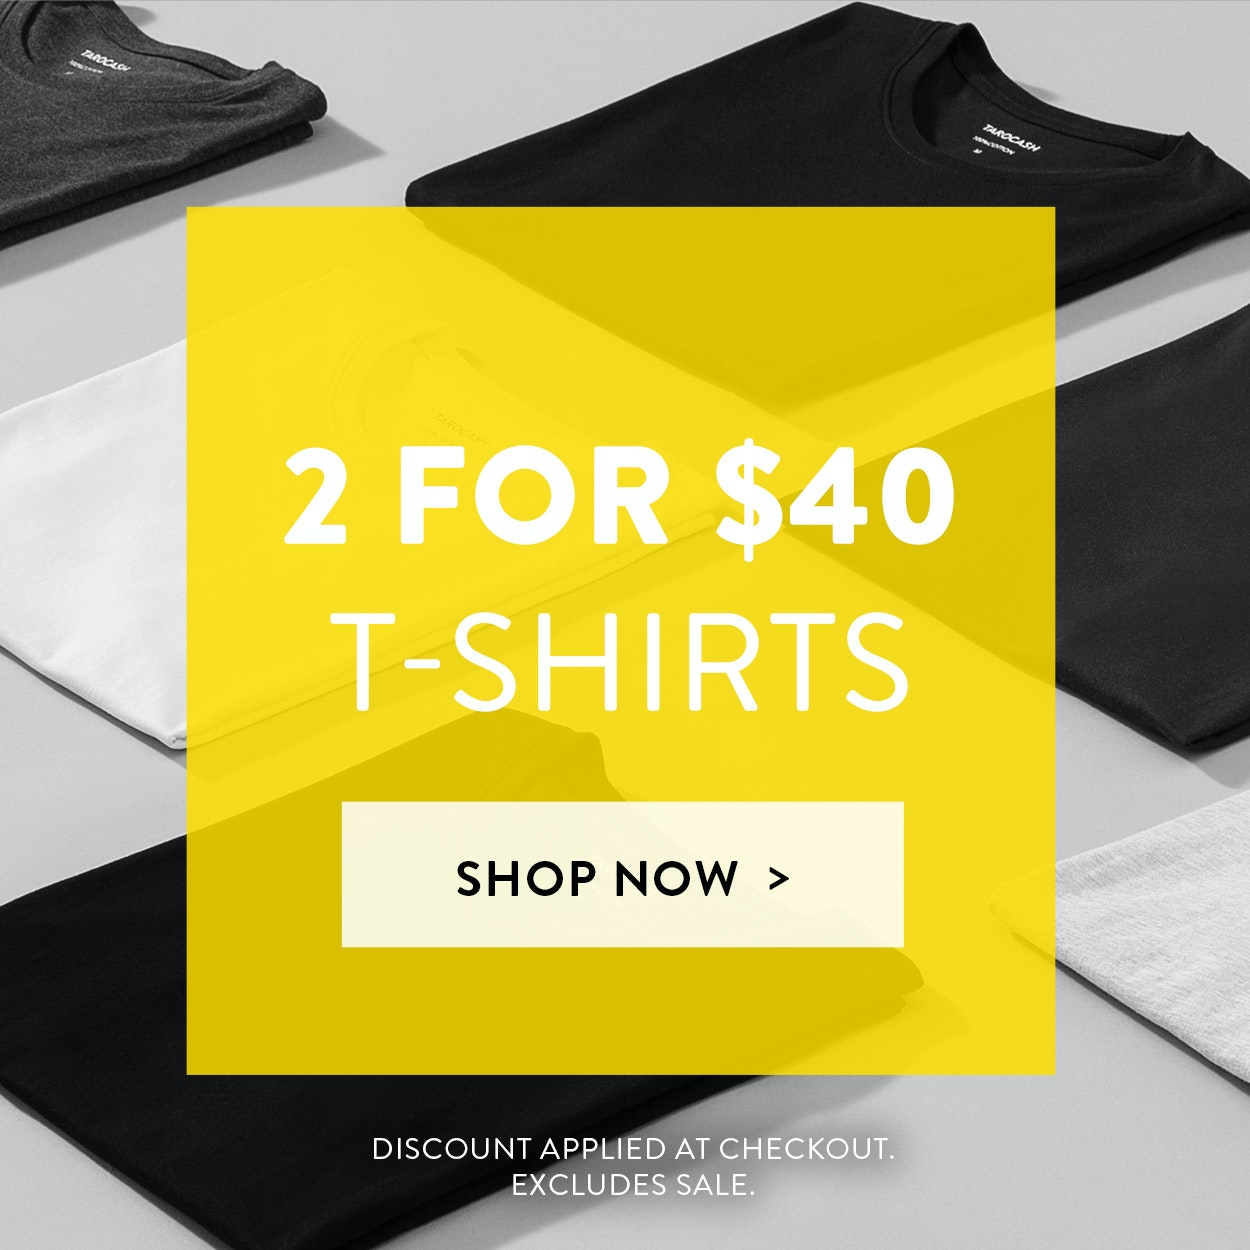 T-shirts: 2 for $40